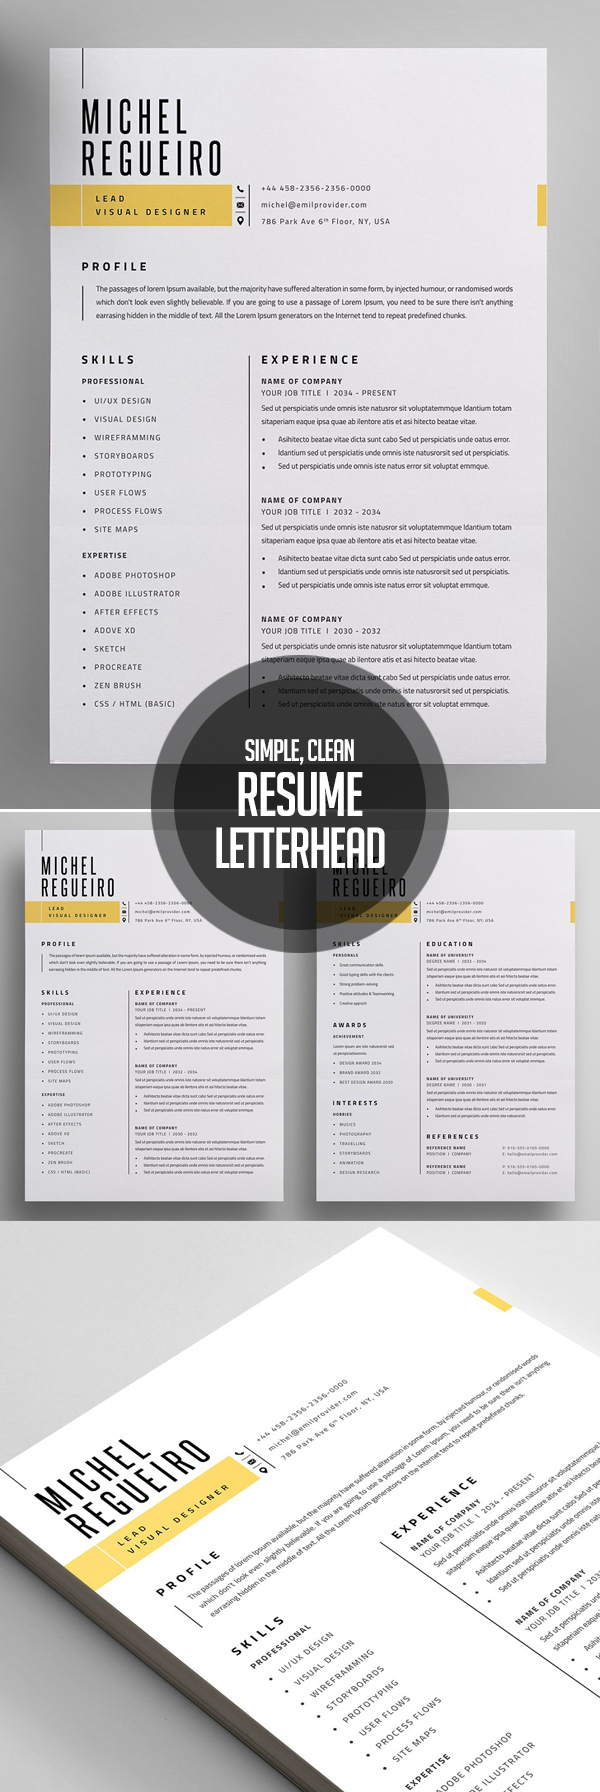 Clean Resume and Letterhead Design